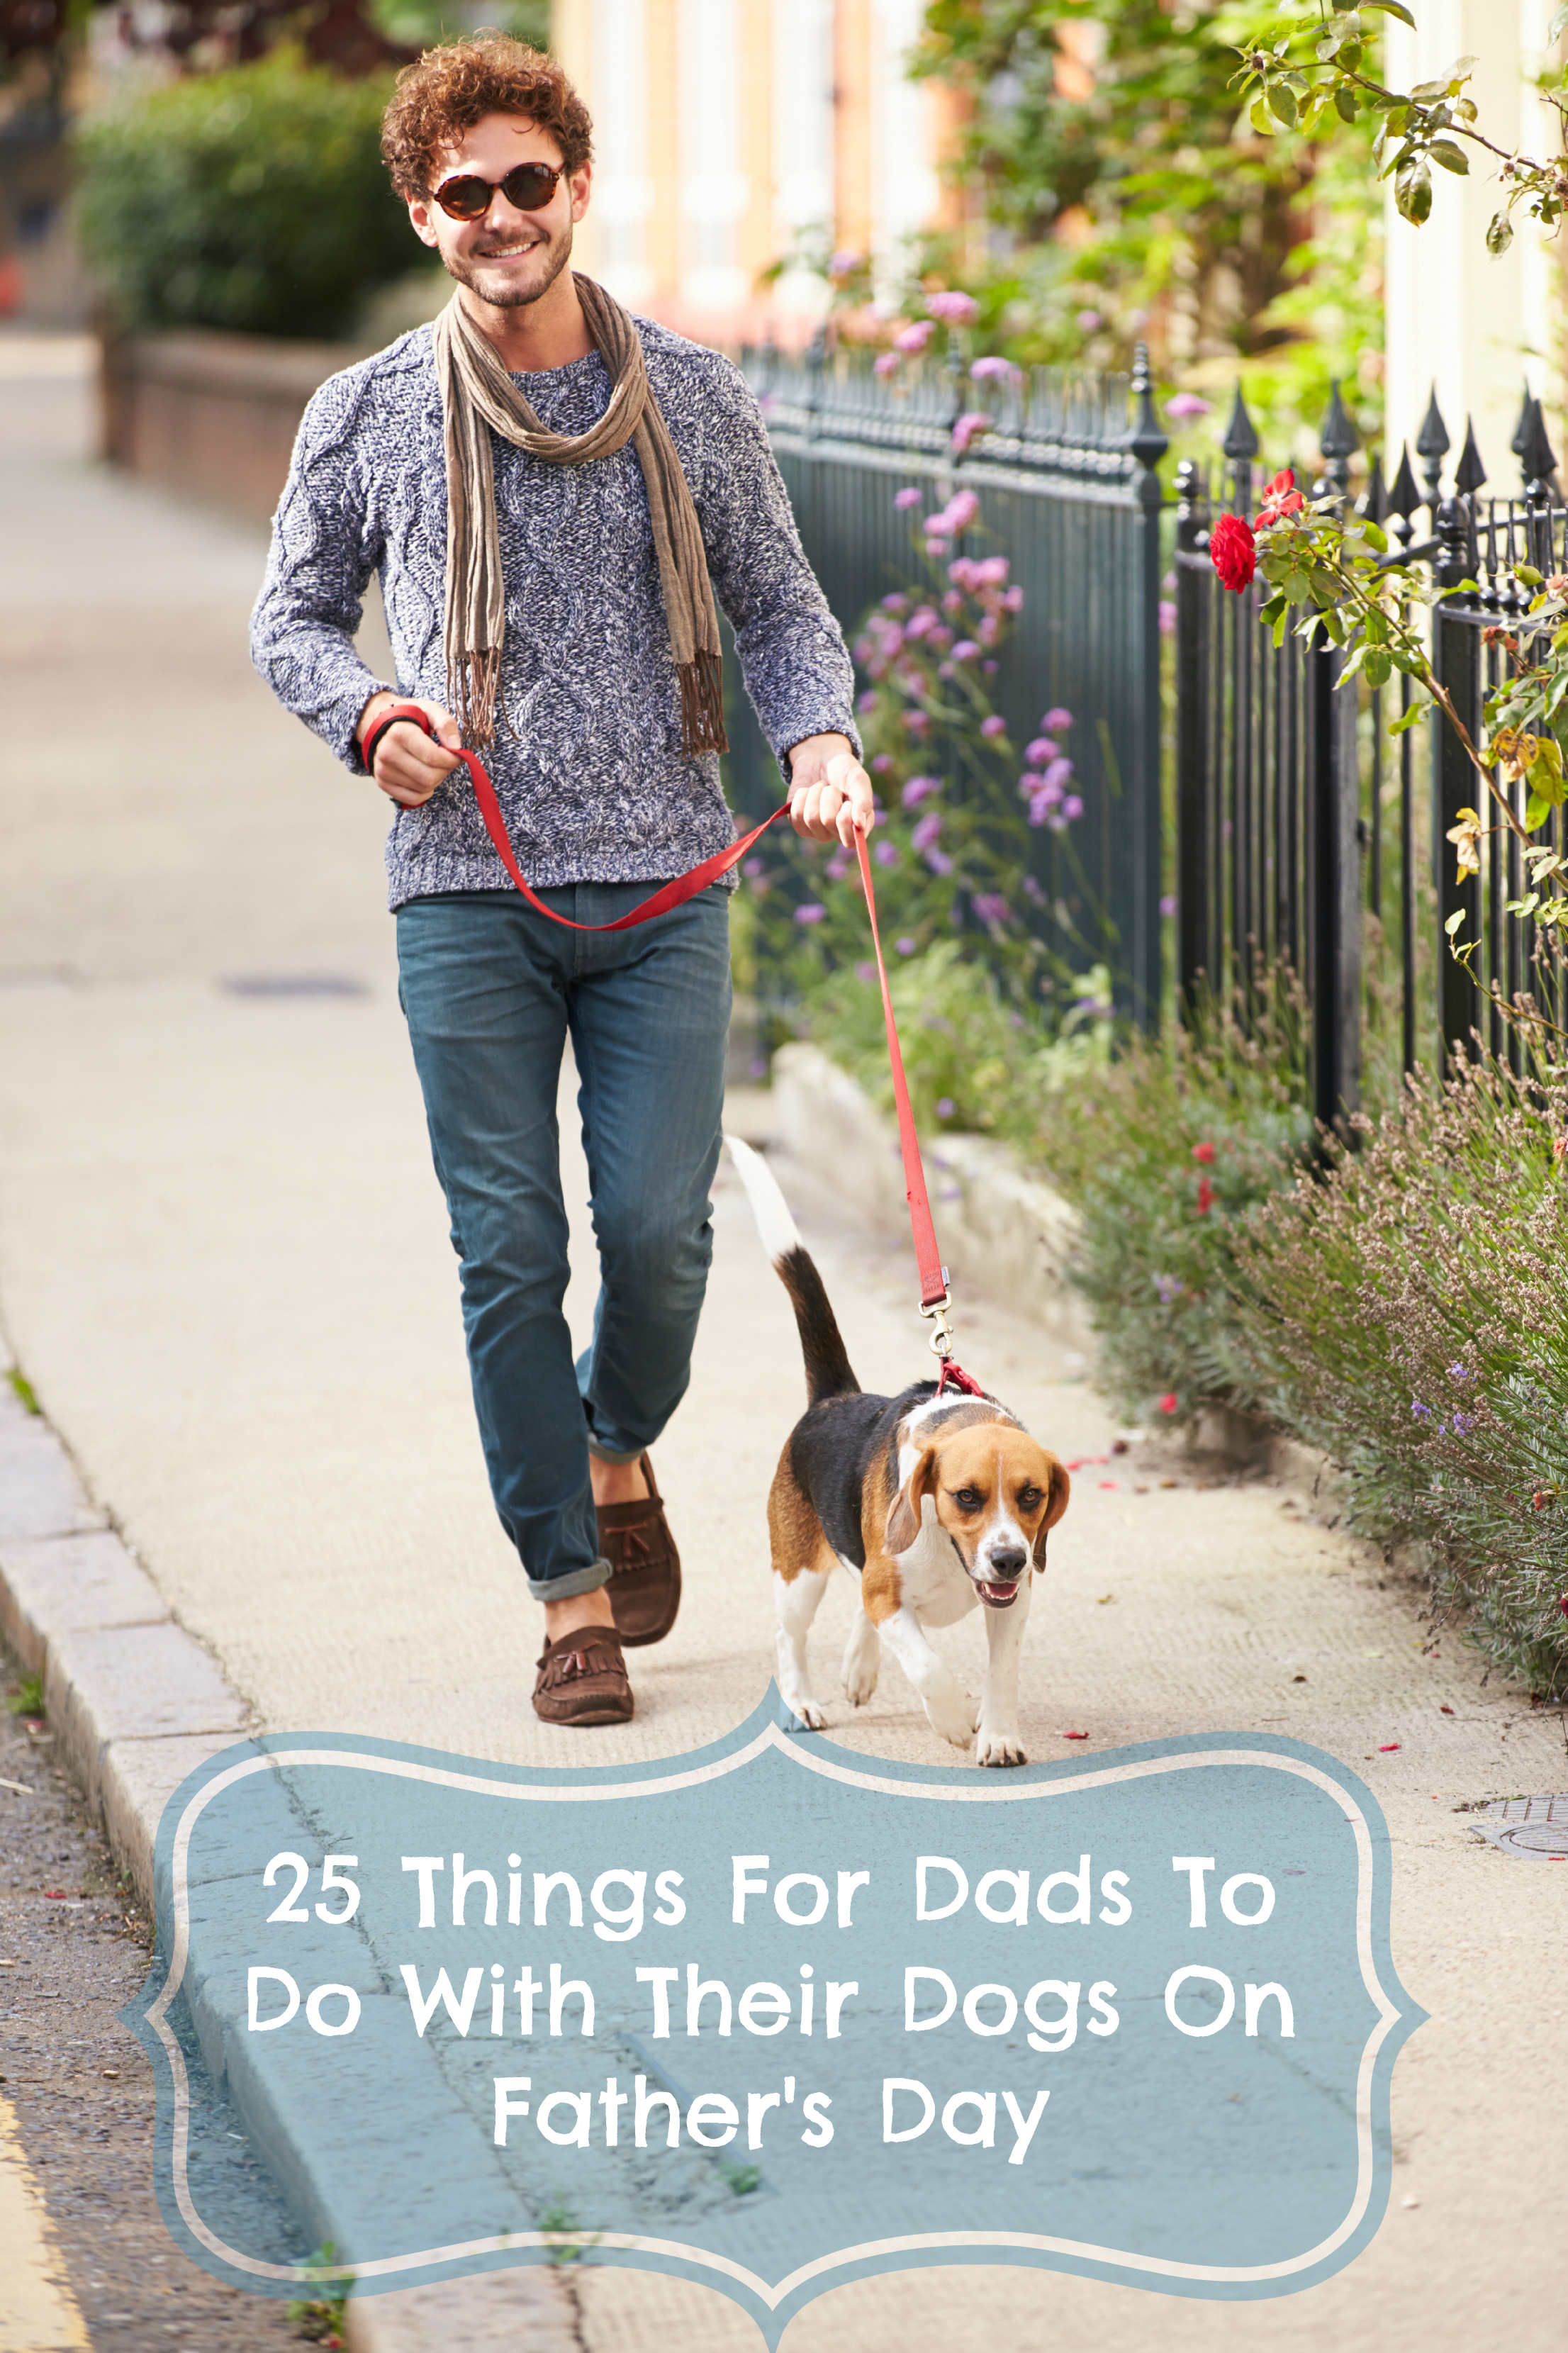 25 Things For Dads To Do With Their Dog's on Father's Day